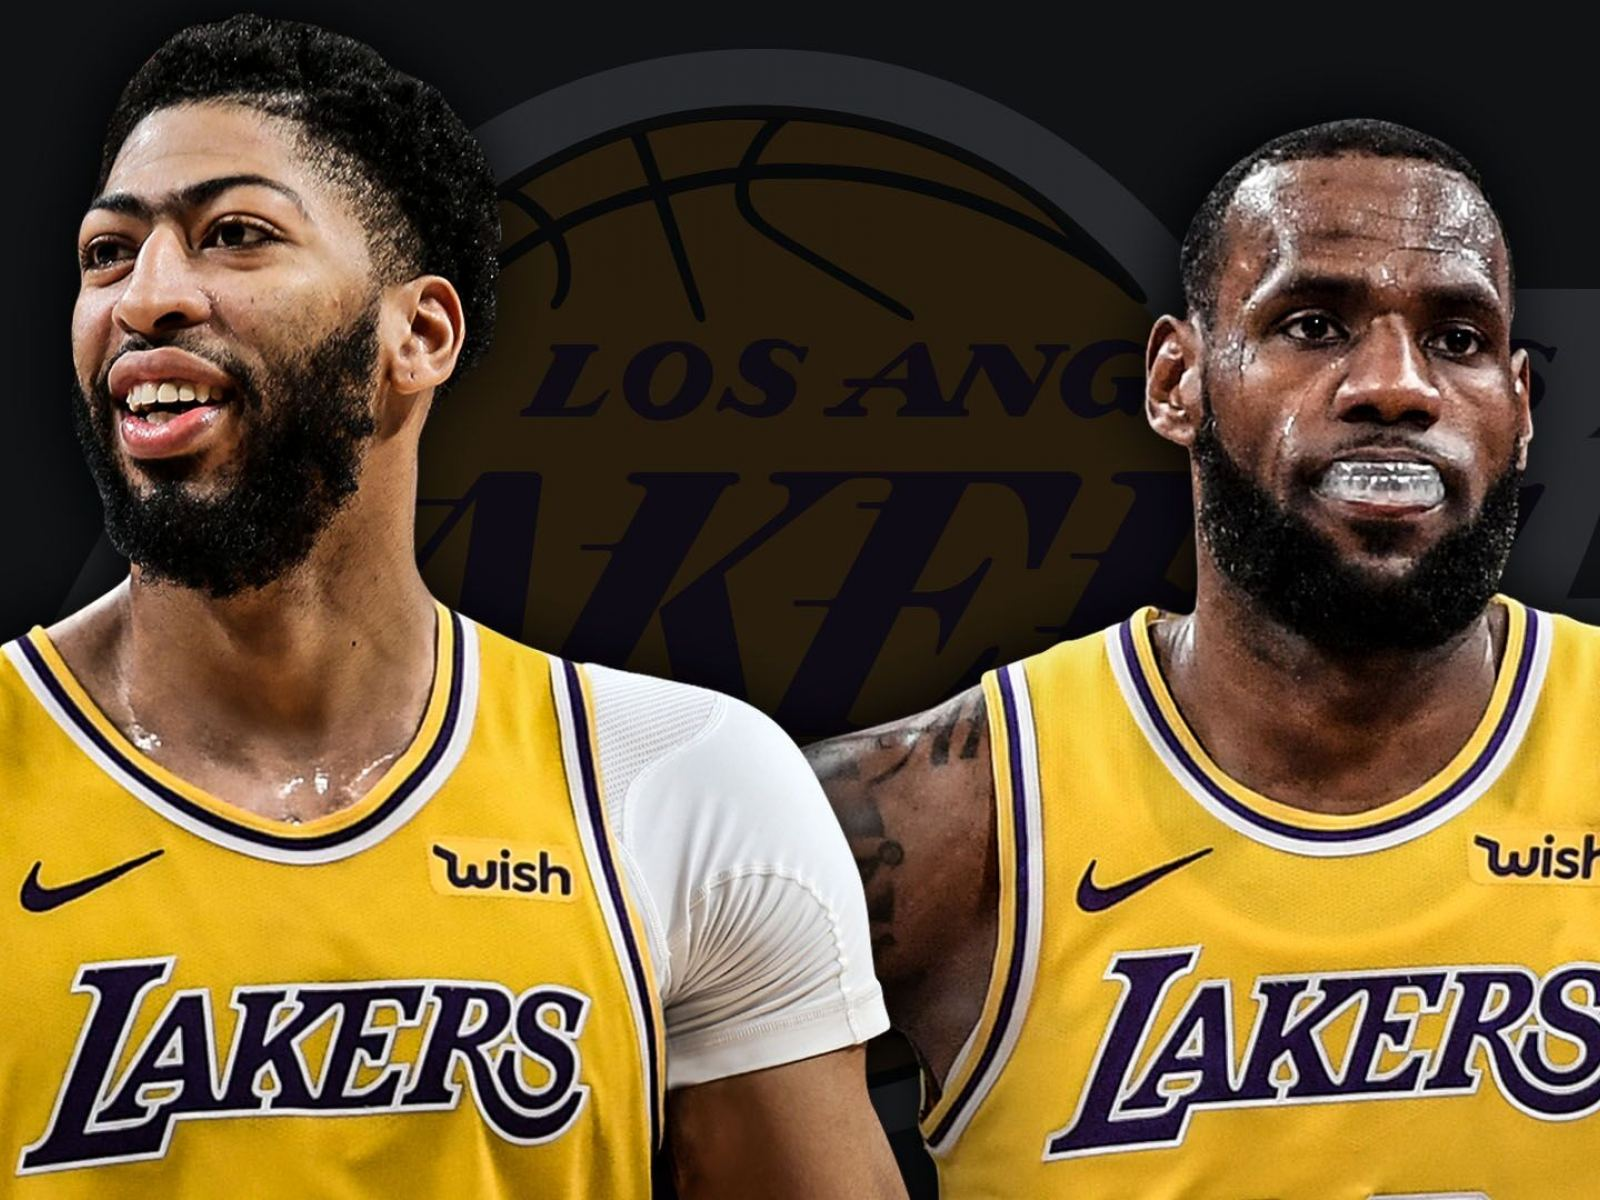 Main image for event titled Los Angeles Lakers vs. LA Clippers